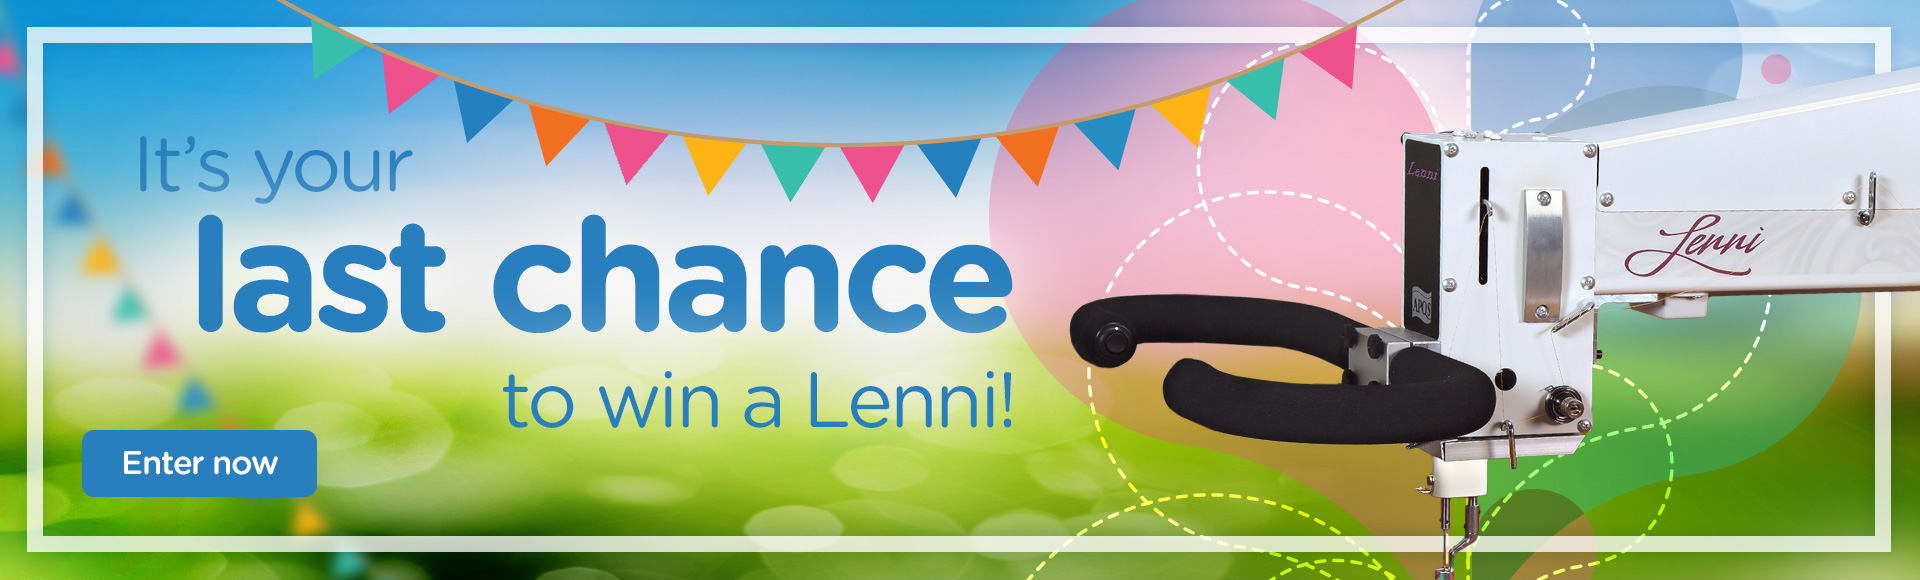 Last chance to enter Lenni giveaway